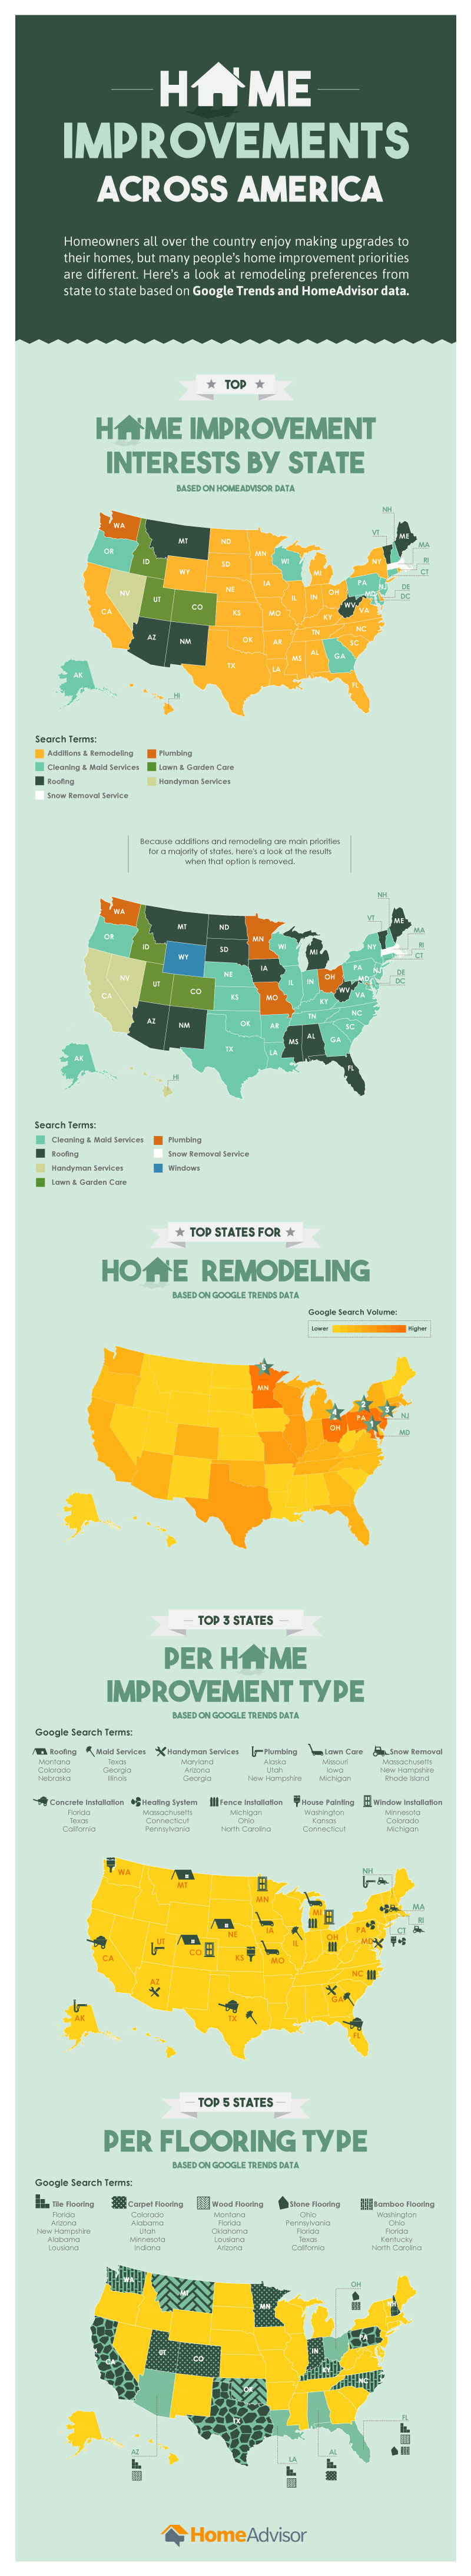 Home Improvement Remodeling Trends By State